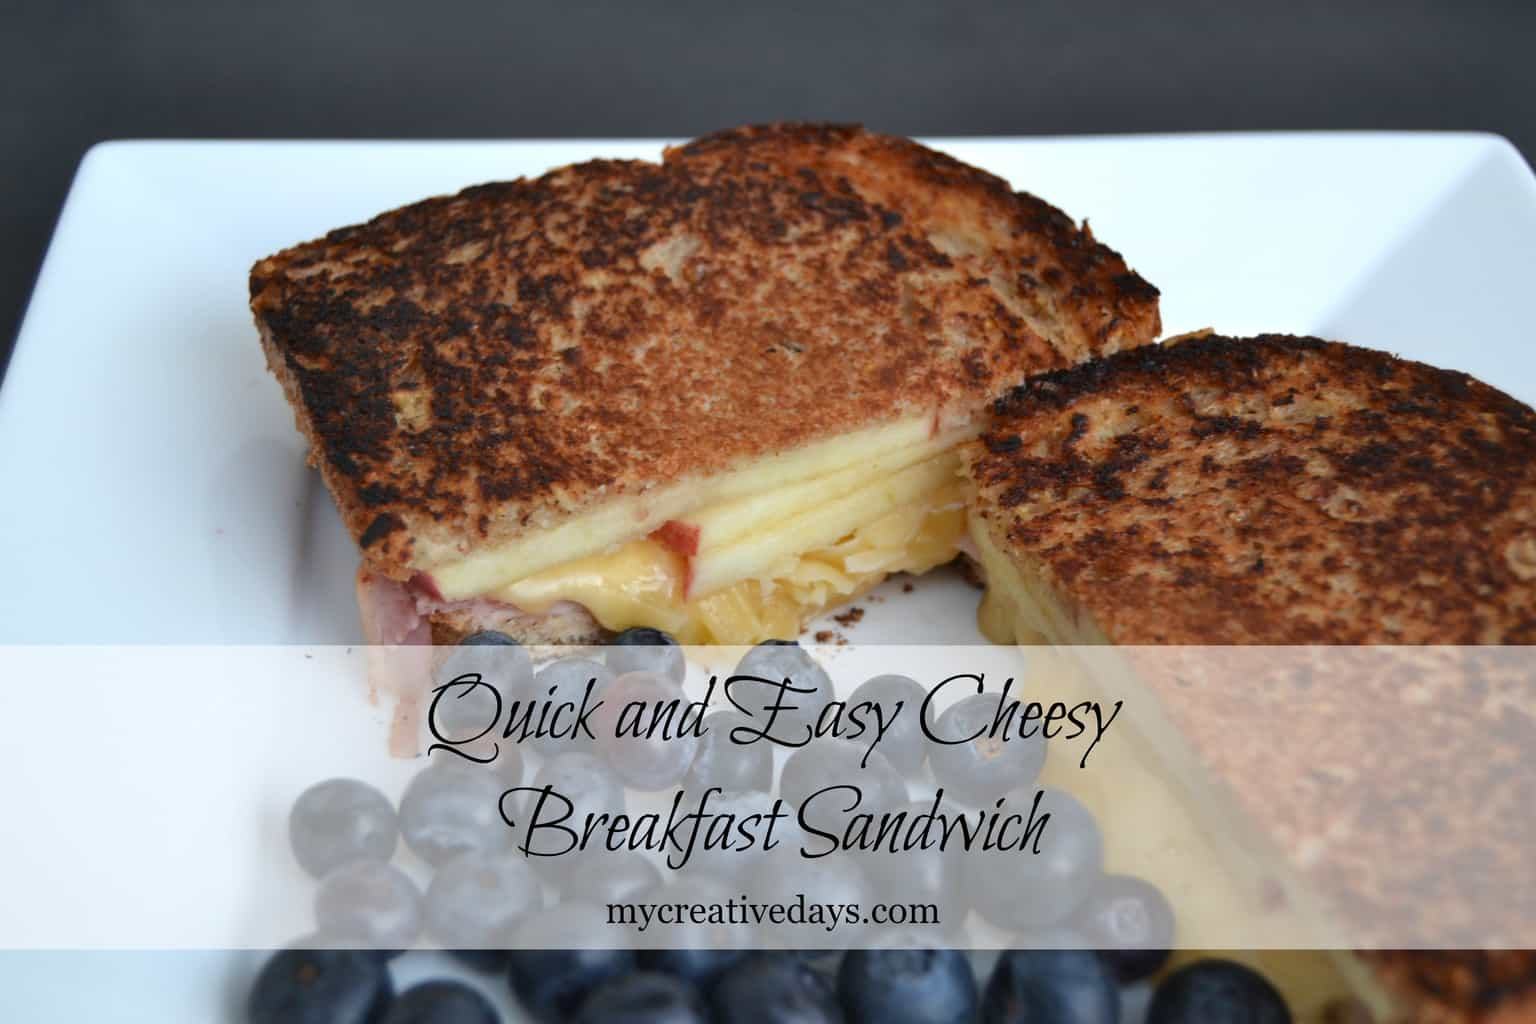 breakfast sandwich is so yummy and quick to make i love recipes